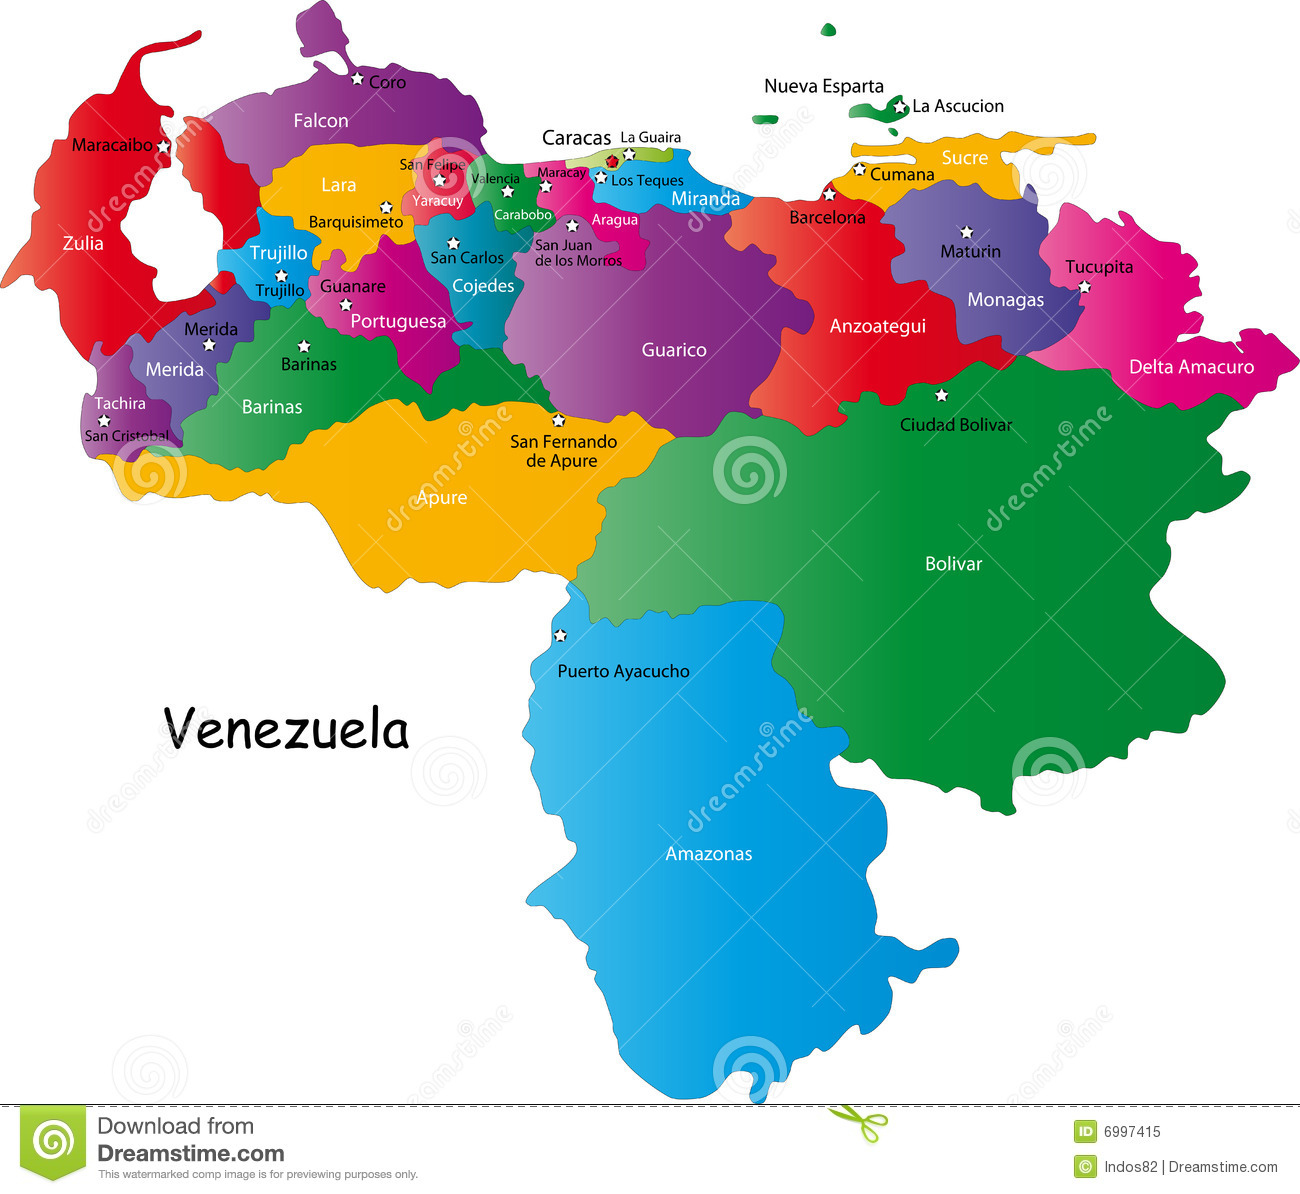 Venezuela map designed in illustration with regions colored in bright